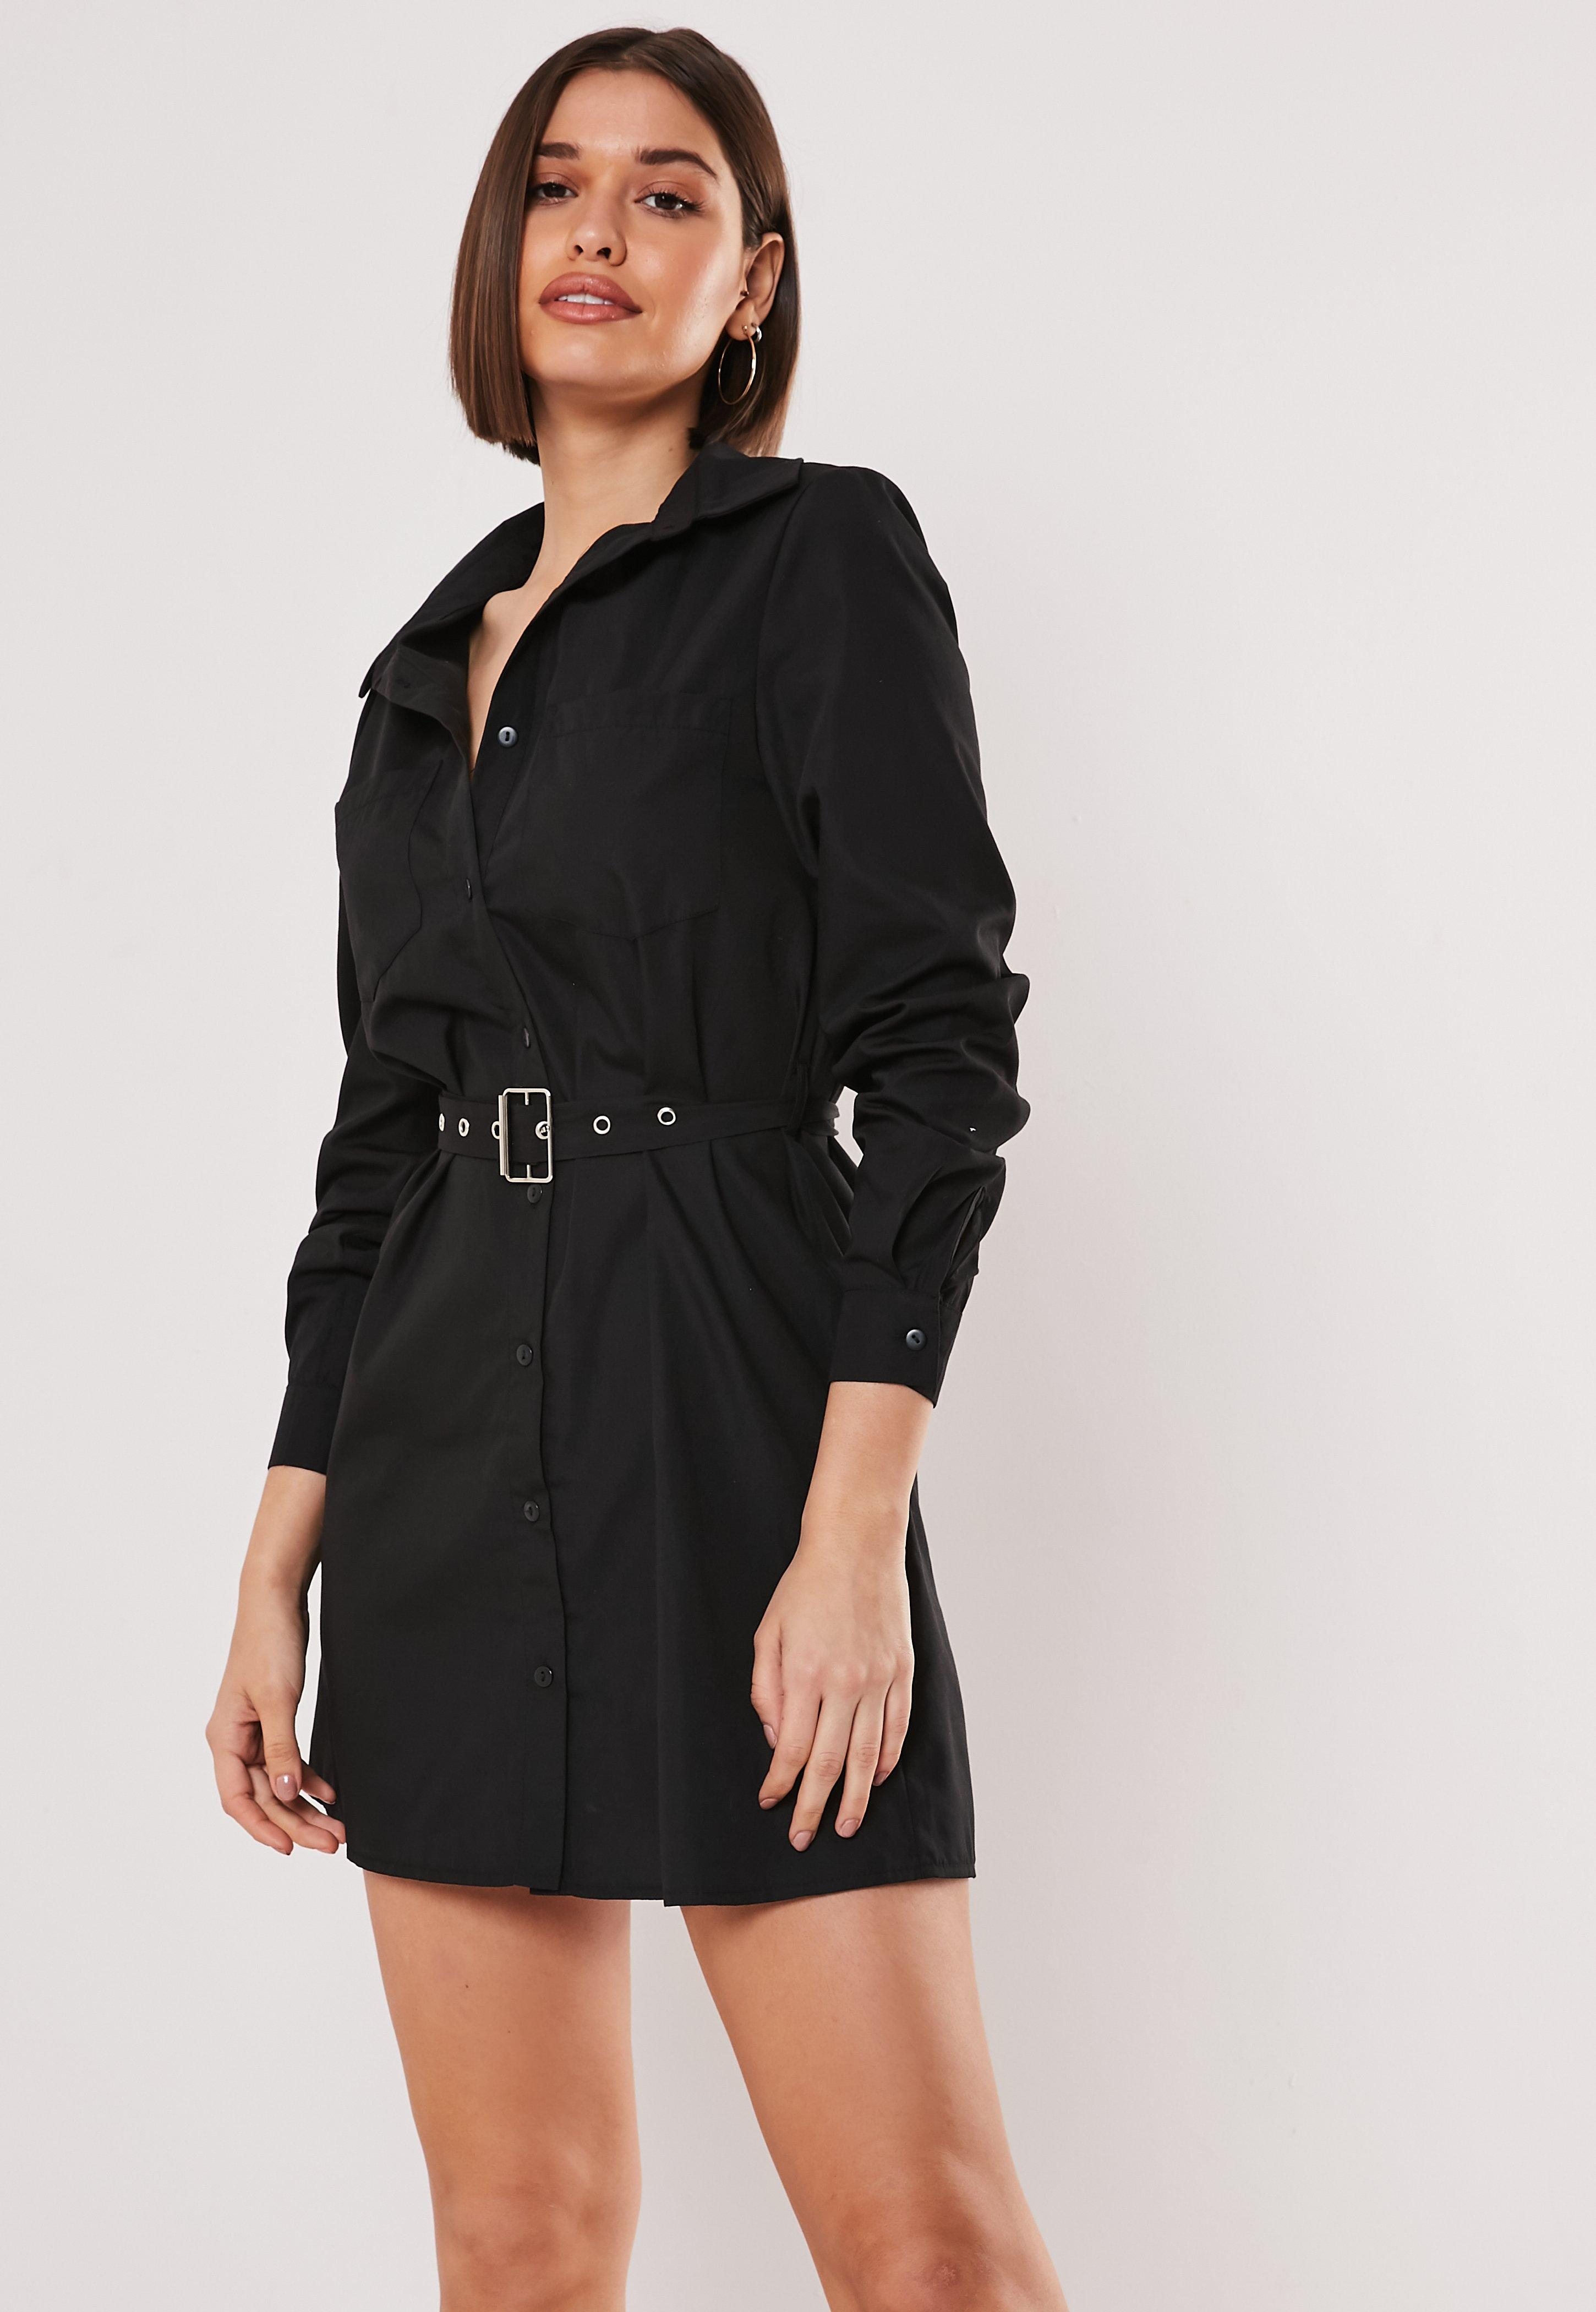 34947018a3c Black Buckle Belted Shirt Dress